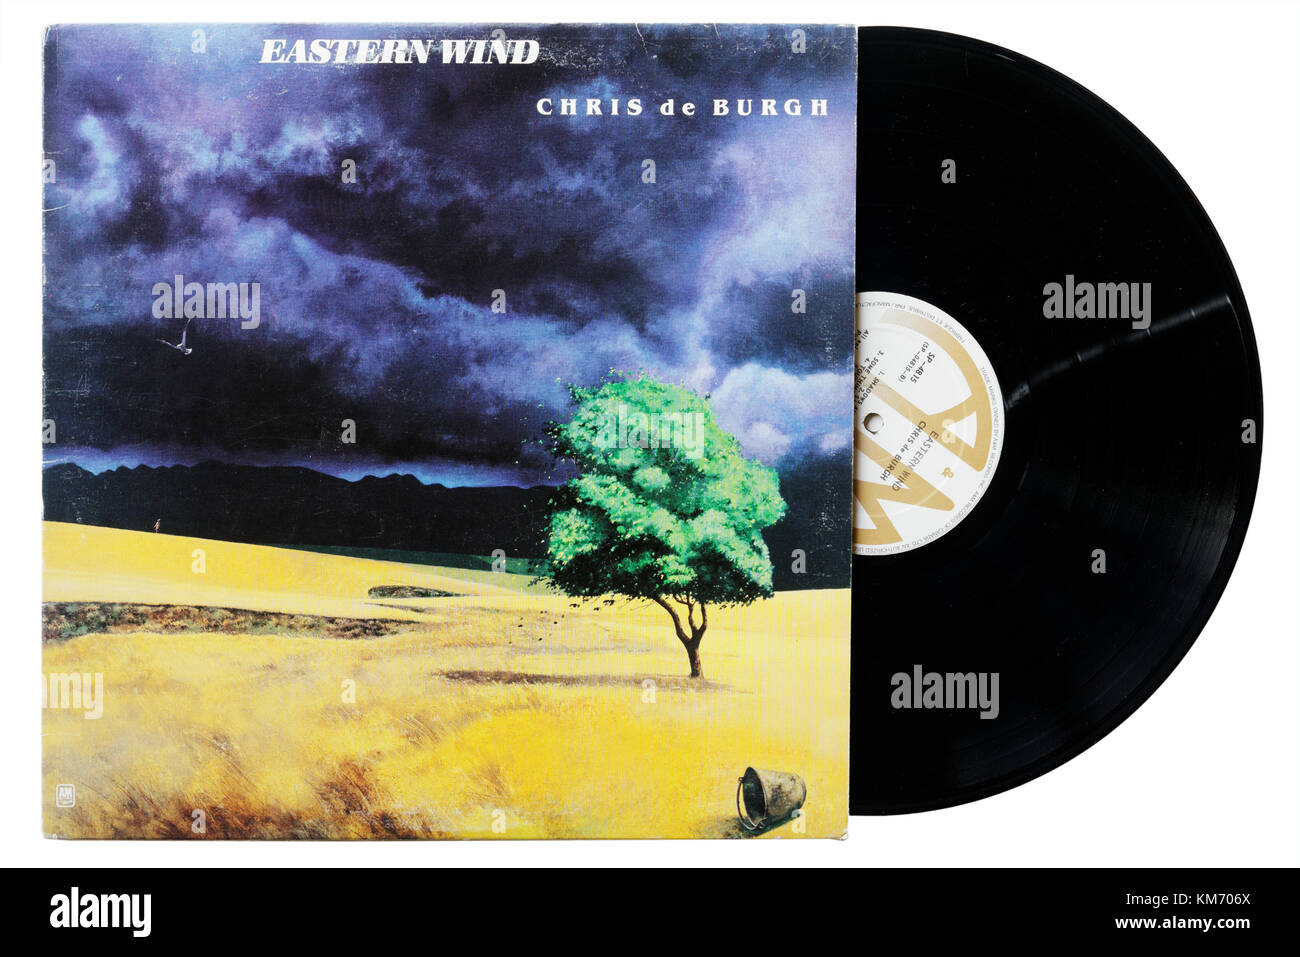 Chris de Burgh Eastern Wind album - Stock Image